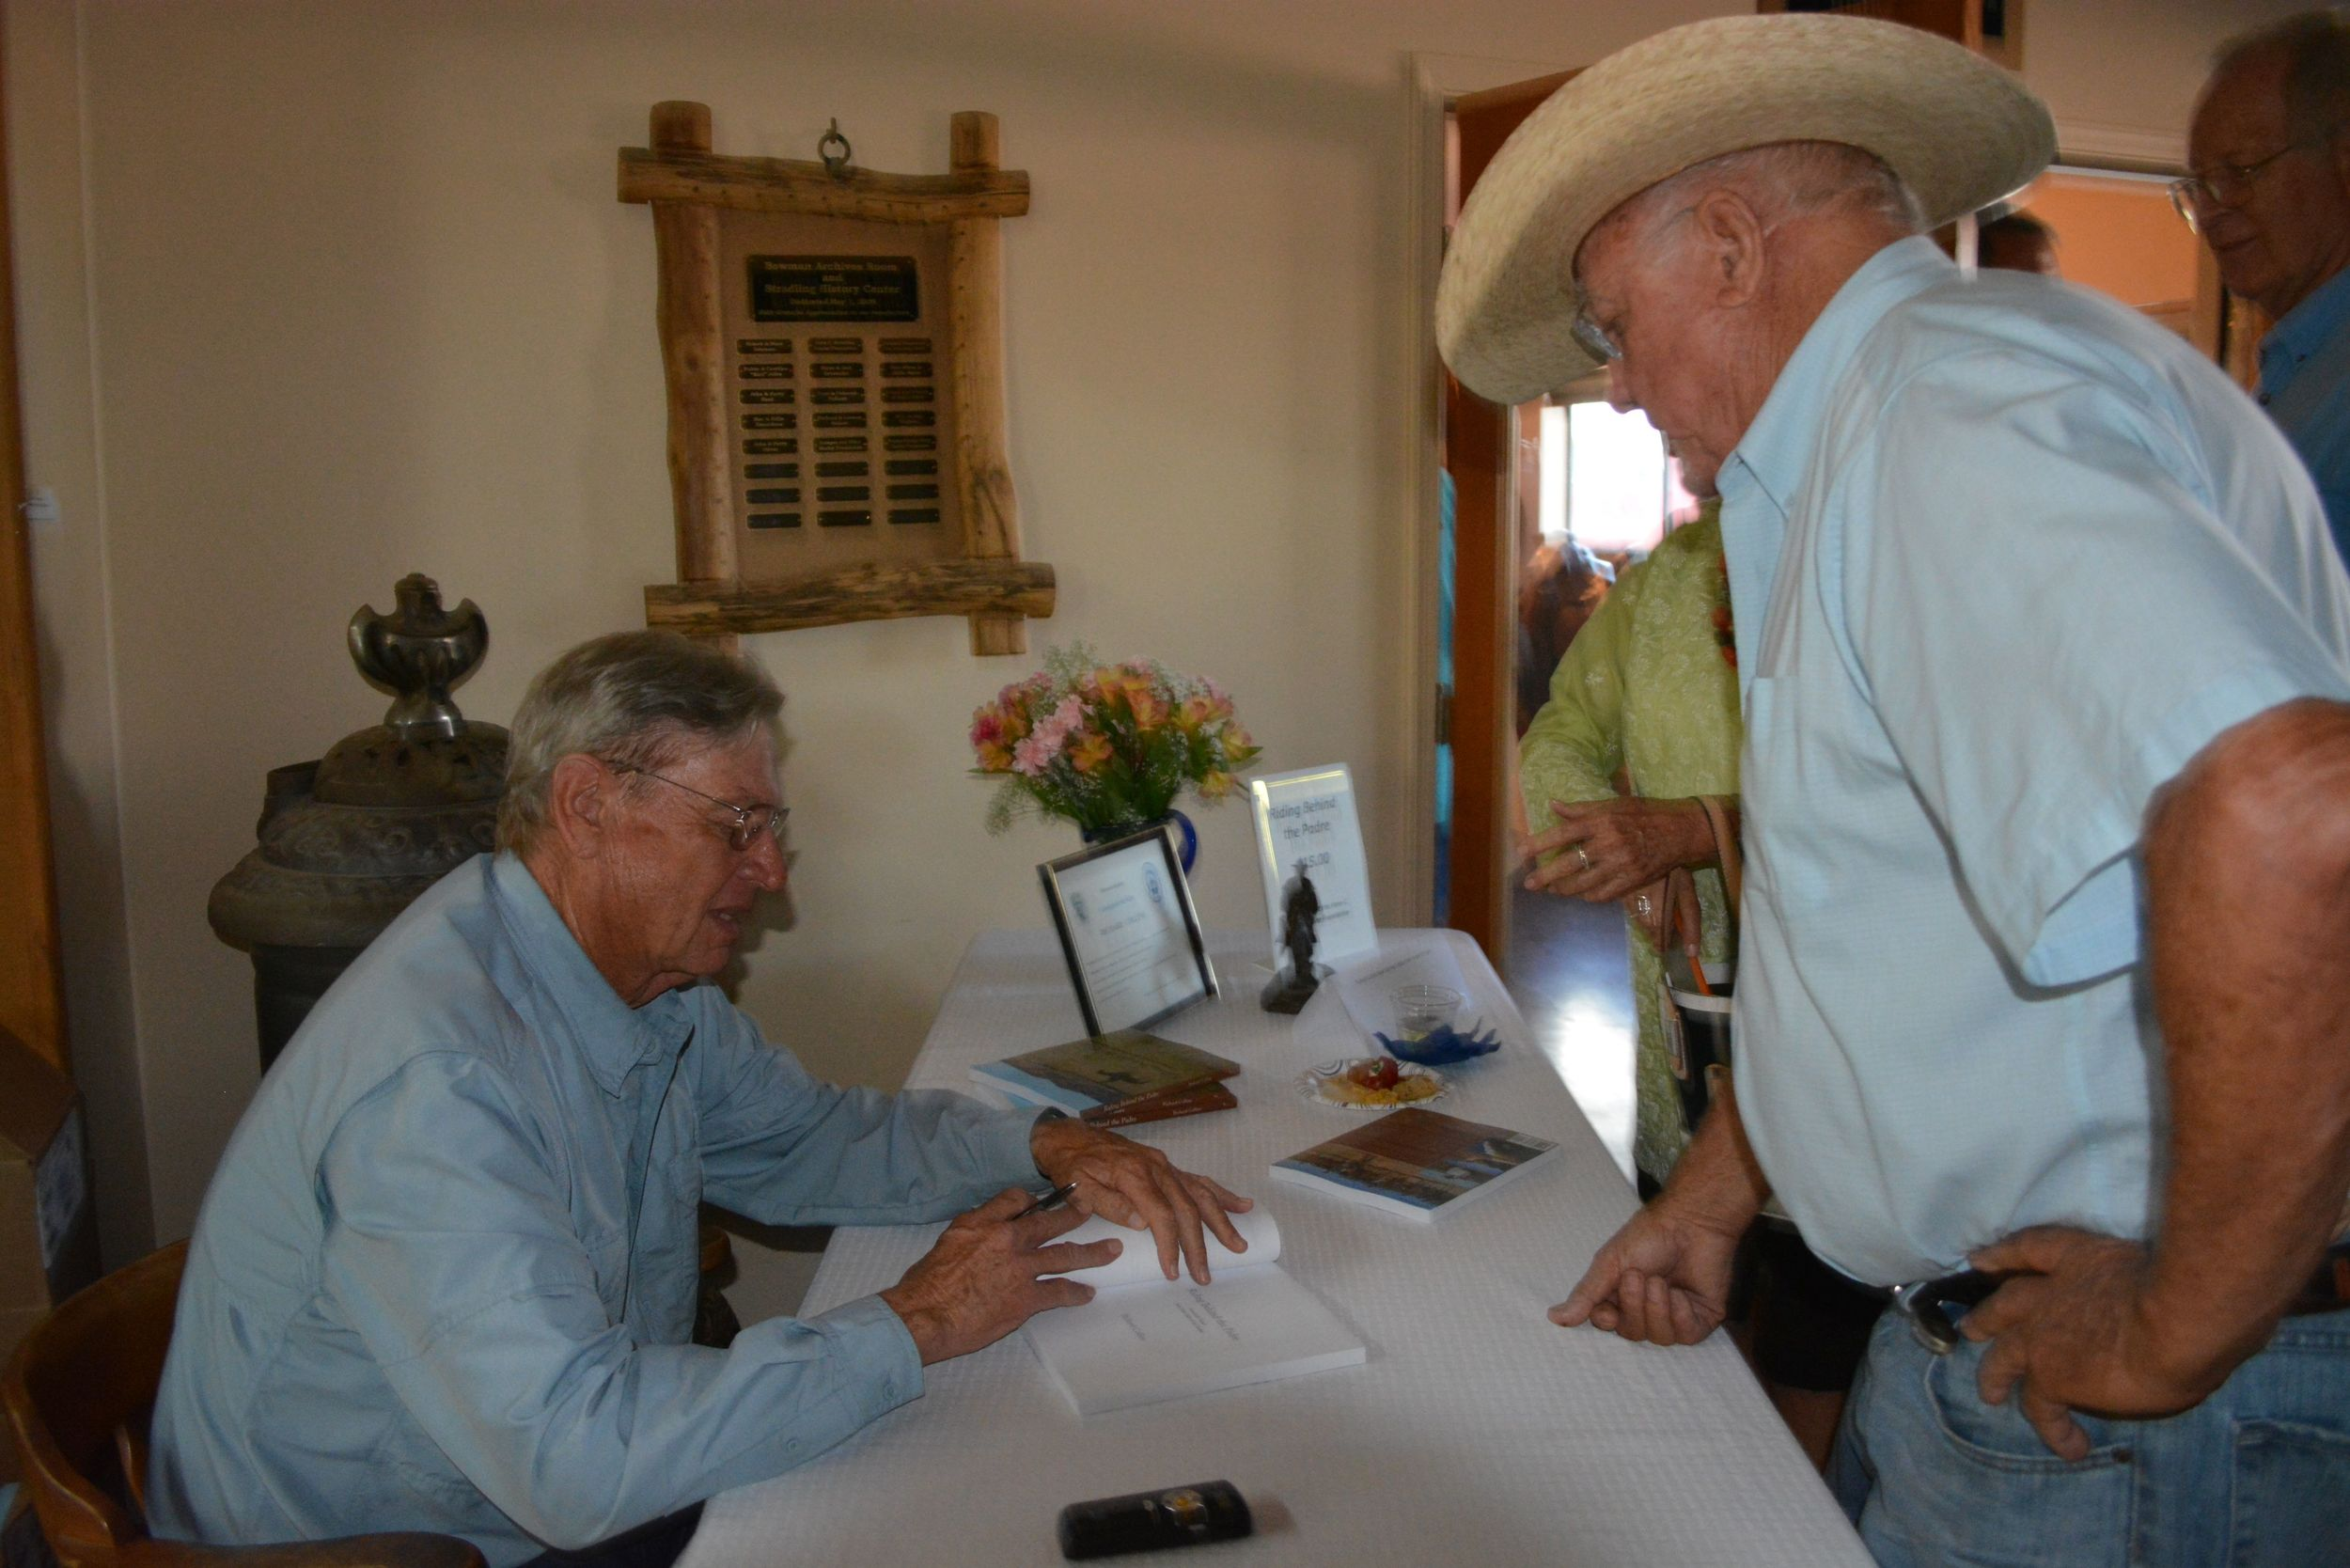 "Richard signing the book for H. Alan Day, author of  The Horse Lover .          Normal   0           false   false   false     EN-US   X-NONE   X-NONE                                                                                                                                                                                                                                                                                                                                                                           /* Style Definitions */  table.MsoNormalTable 	{mso-style-name:""Table Normal""; 	mso-tstyle-rowband-size:0; 	mso-tstyle-colband-size:0; 	mso-style-noshow:yes; 	mso-style-priority:99; 	mso-style-parent:""""; 	mso-padding-alt:0in 5.4pt 0in 5.4pt; 	mso-para-margin-top:0in; 	mso-para-margin-right:0in; 	mso-para-margin-bottom:10.0pt; 	mso-para-margin-left:0in; 	mso-pagination:widow-orphan; 	font-size:11.0pt; 	font-family:""Calibri"",""sans-serif""; 	mso-ascii-font-family:Calibri; 	mso-ascii-theme-font:minor-latin; 	mso-hansi-font-family:Calibri; 	mso-hansi-theme-font:minor-latin;}"